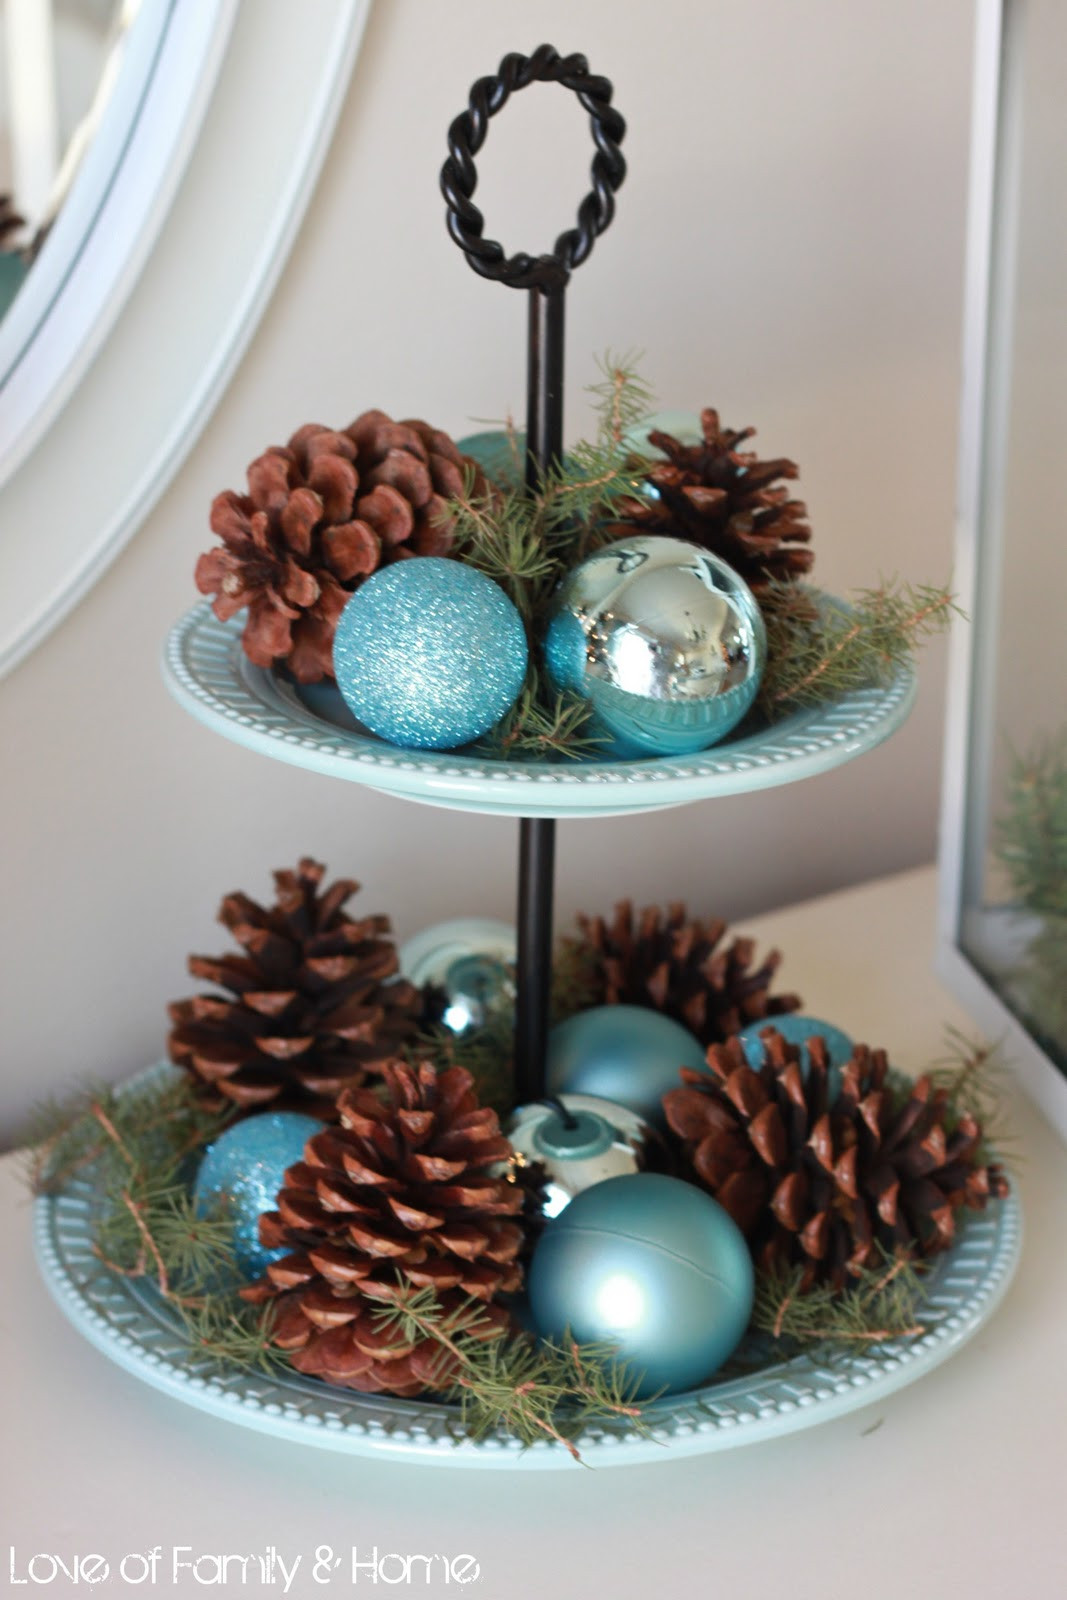 Kitchen Christmas Ornament  My Christmas Kitchen 2011 & Giveaway Winner Love of